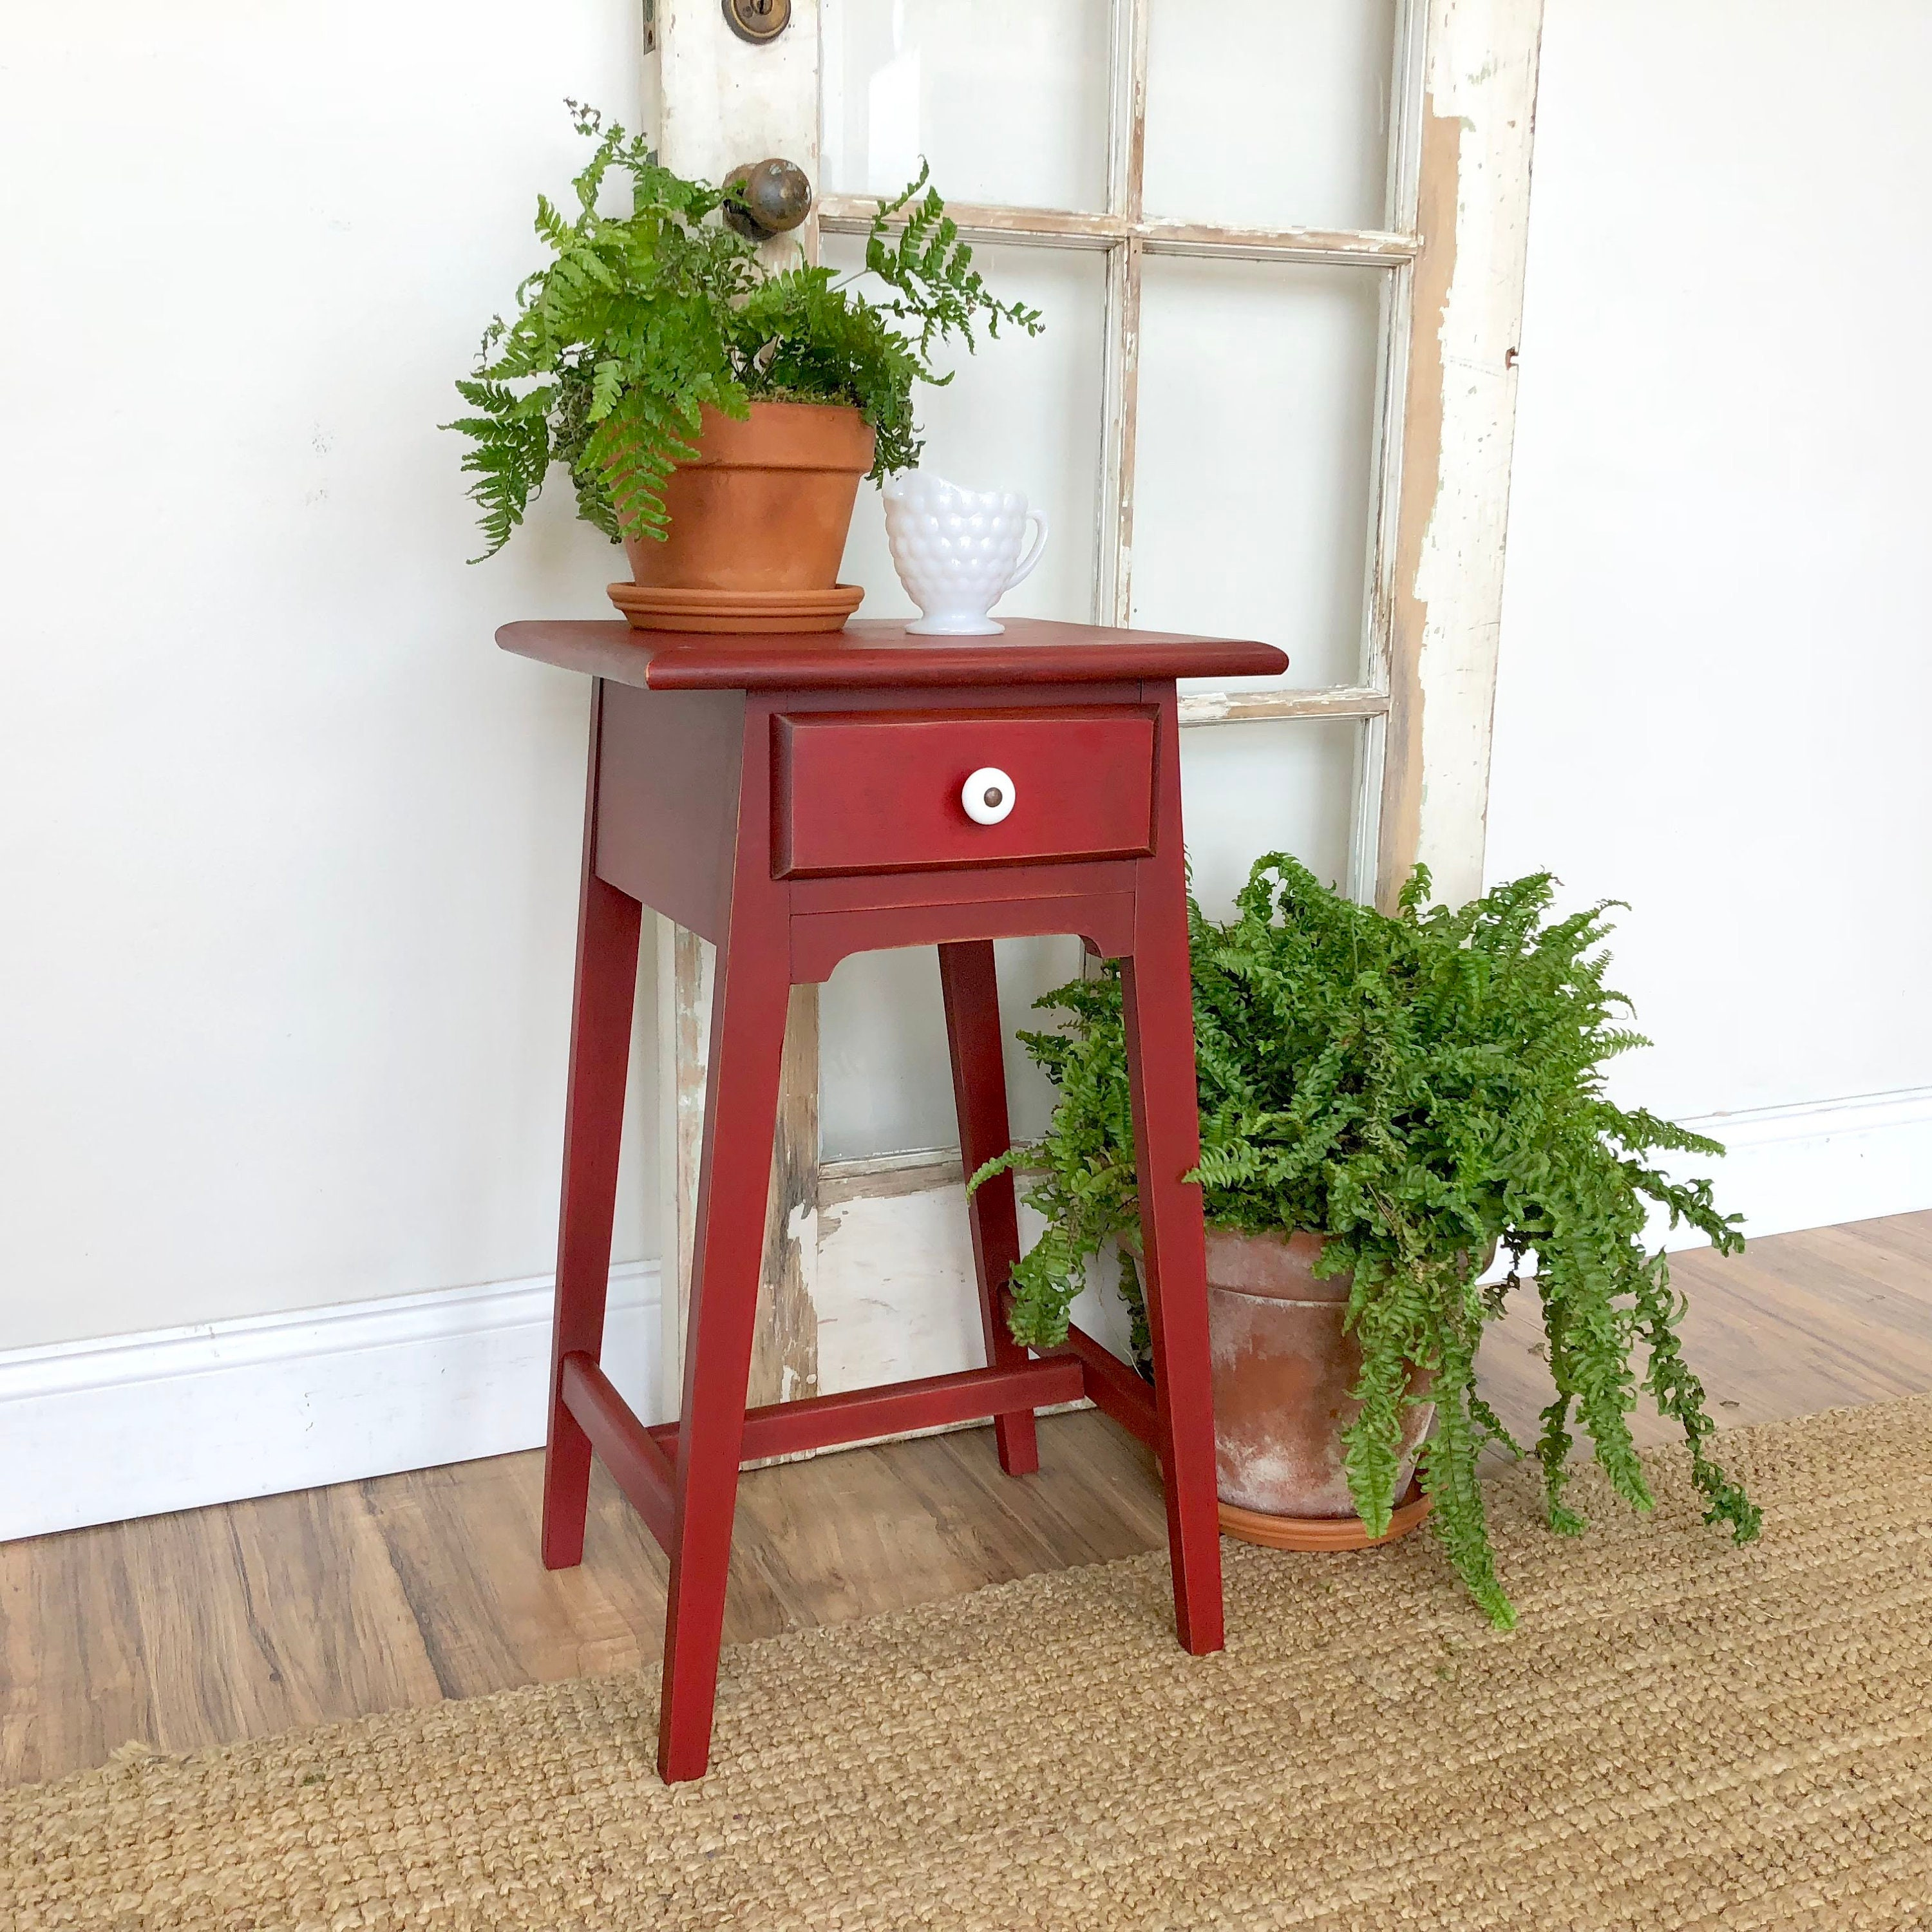 red end table antique side table farmhouse furniture small bedside table nightstand table distressed nightstand - Small Antique Side Tables